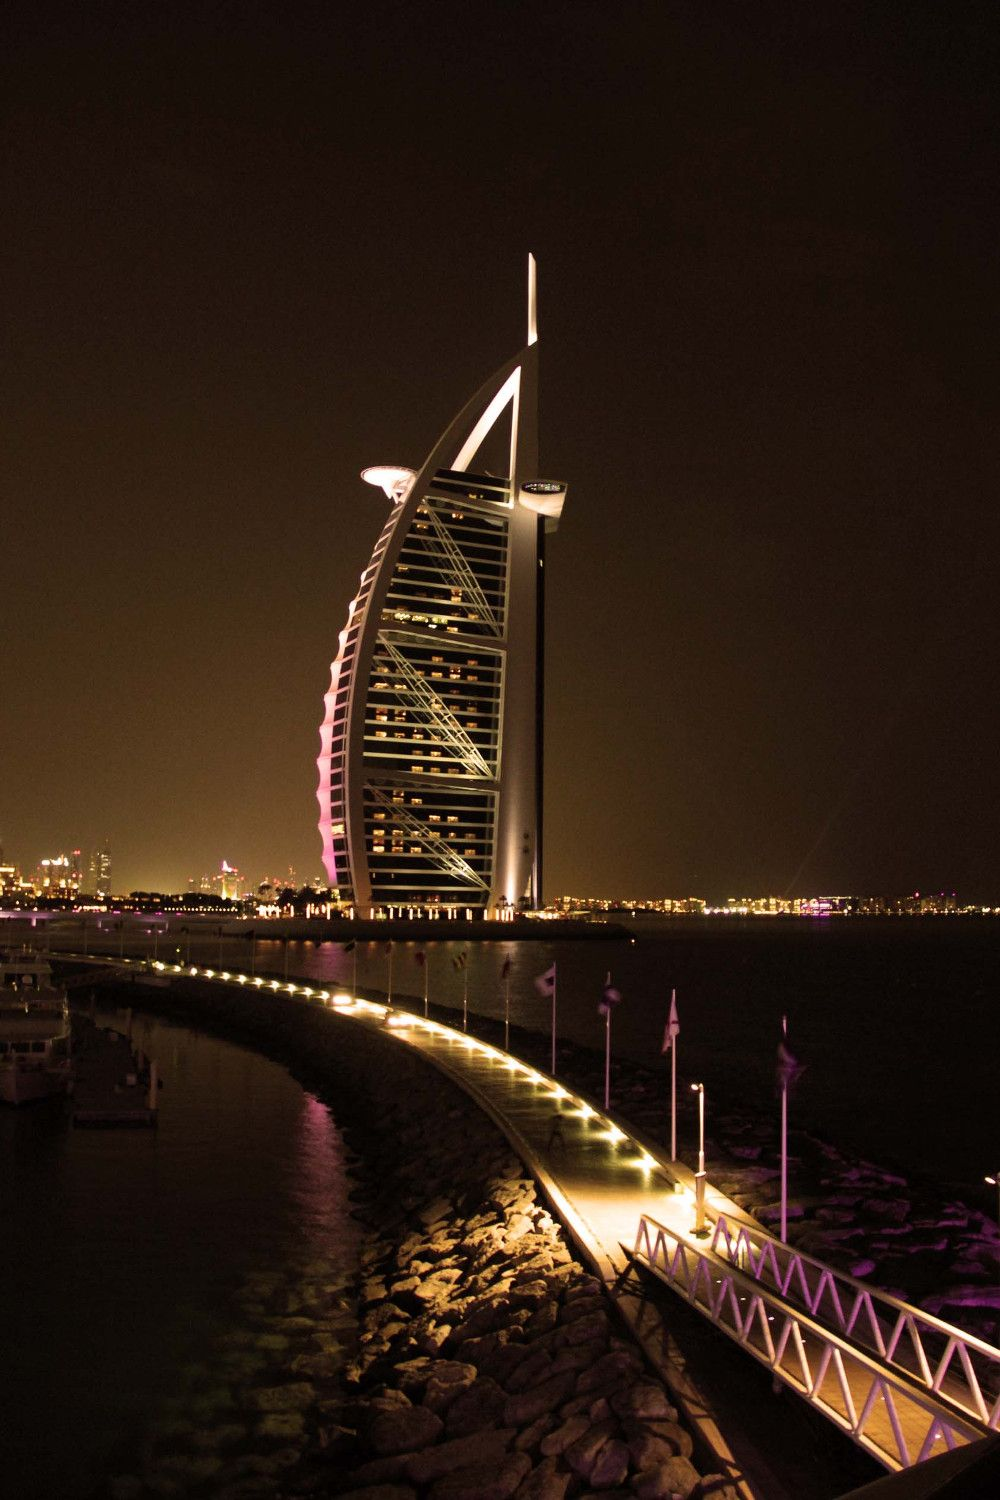 when you go Dubai sightseeing, you can't miss the Burj Al Arab. This local's guide to Dubai, UAE includes all the Dubai tourist attractions and off the beaten path things to do in Dubai, as weel as Dubai accommodation options, Dubai food, and Dubai tips. #dubai #dubaiguide #dubaitravelguide #dubaiattractions #dubaithingstodo #travel #uae #dubaitips